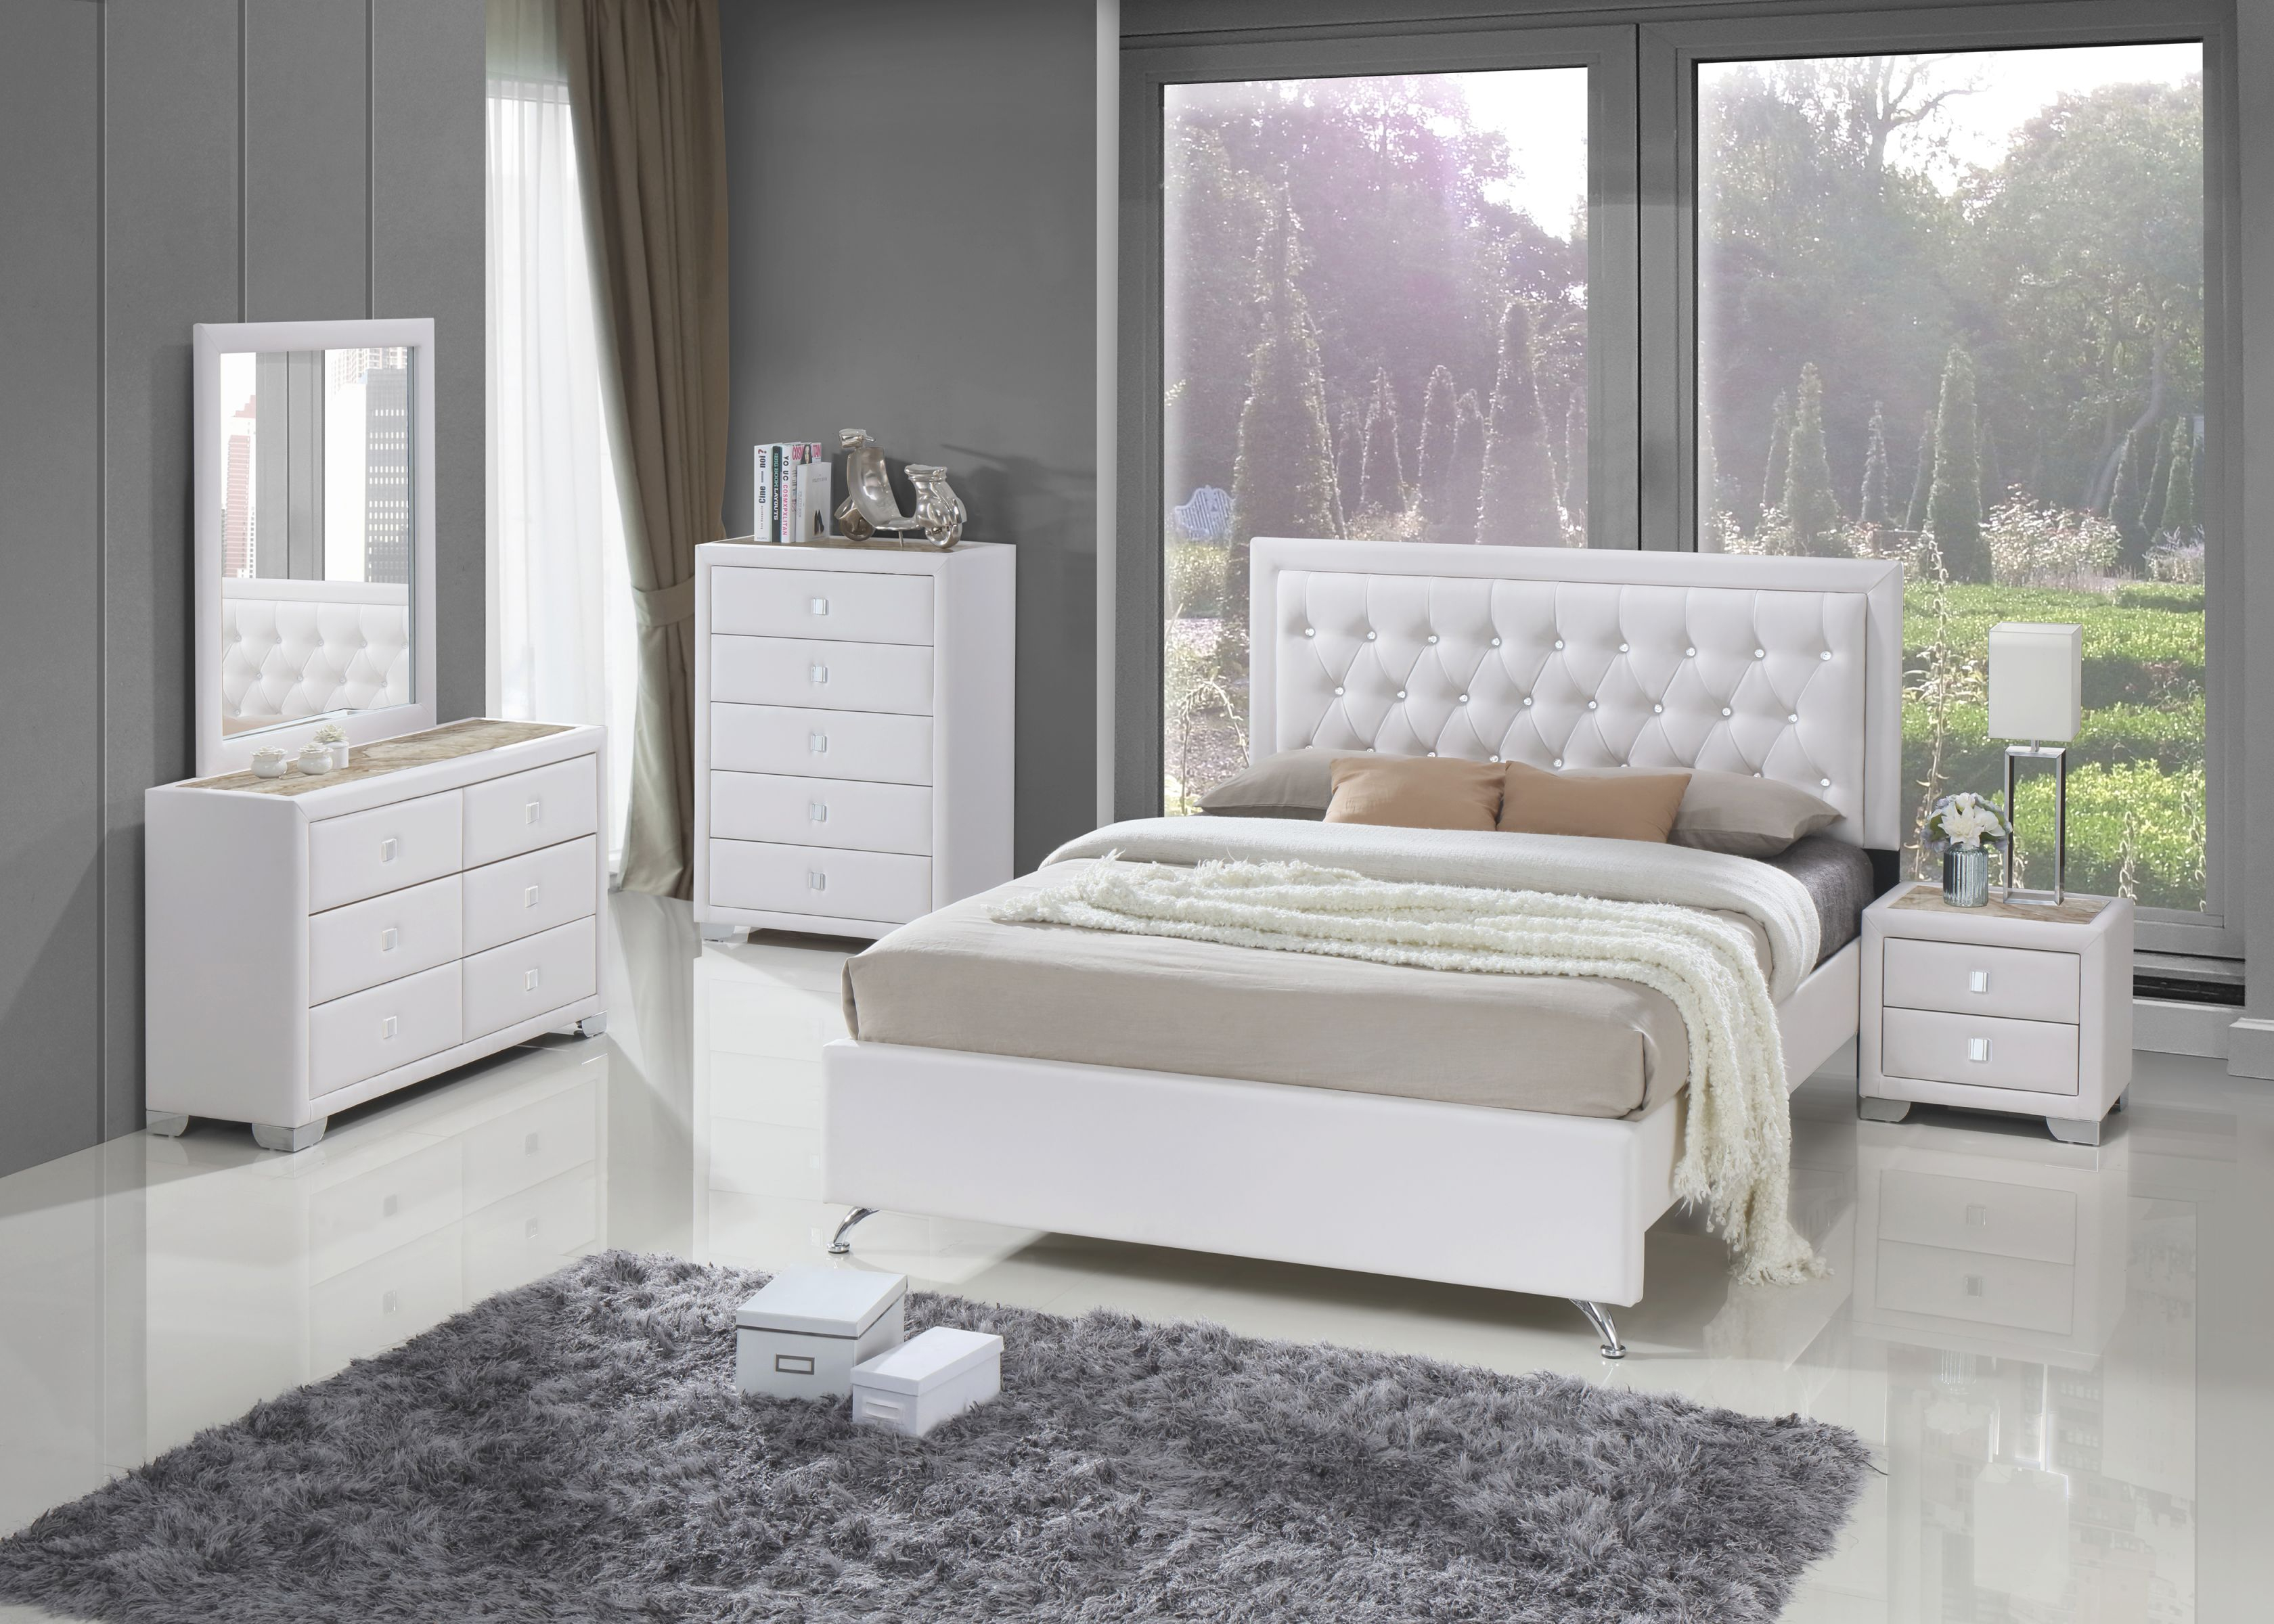 Diamond Bedroom Set - Better Home Products for Unique ...